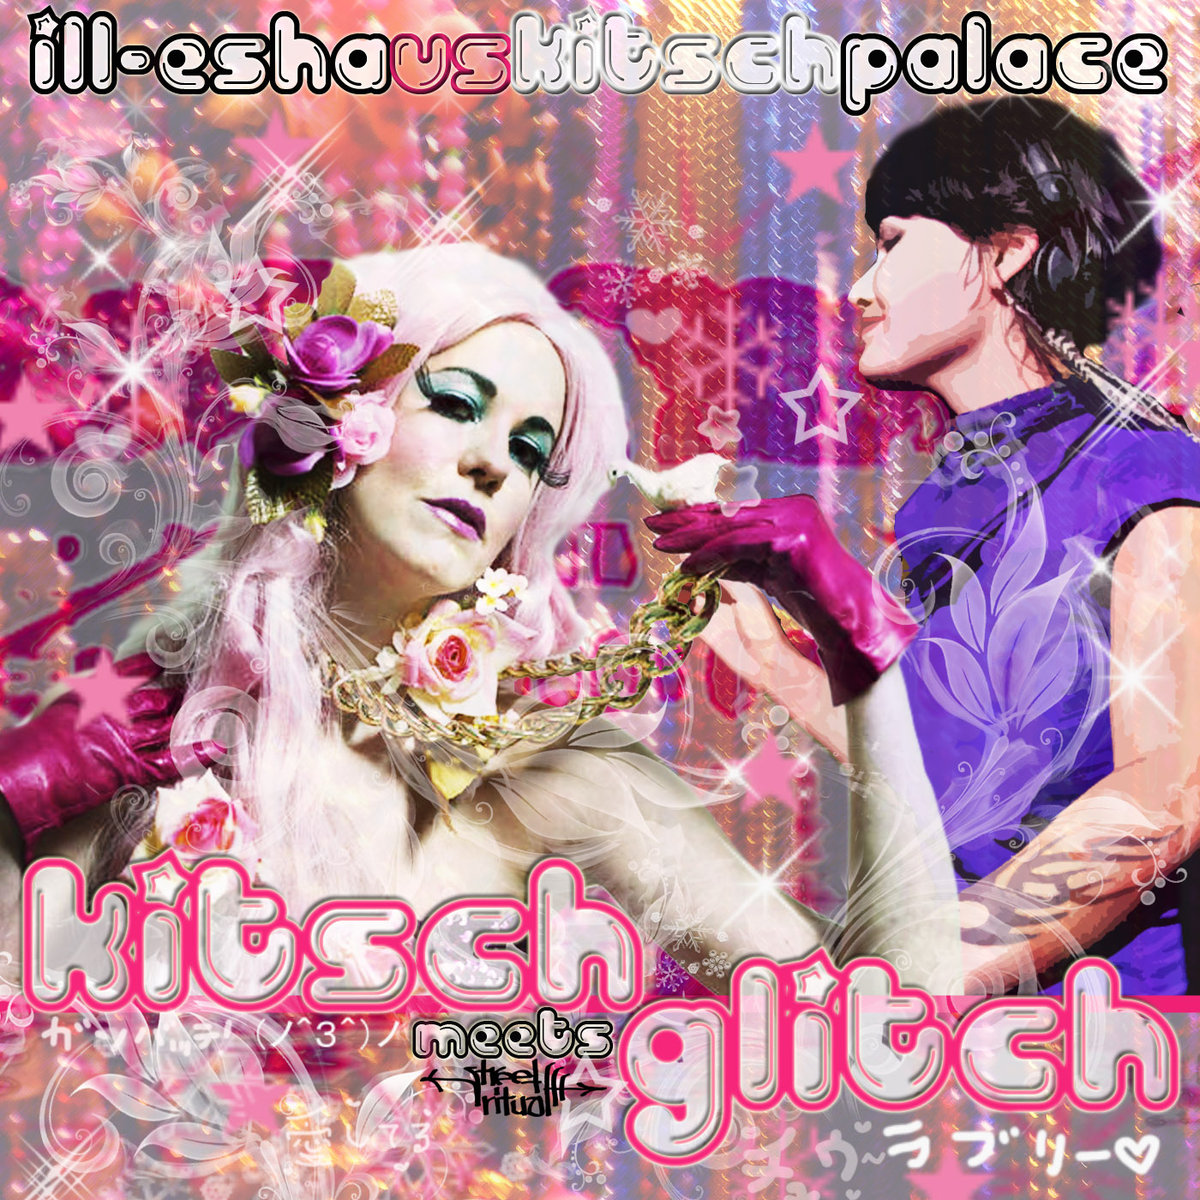 ill-esha vs. Kitsch Palace - Kitsch Meets Glitch